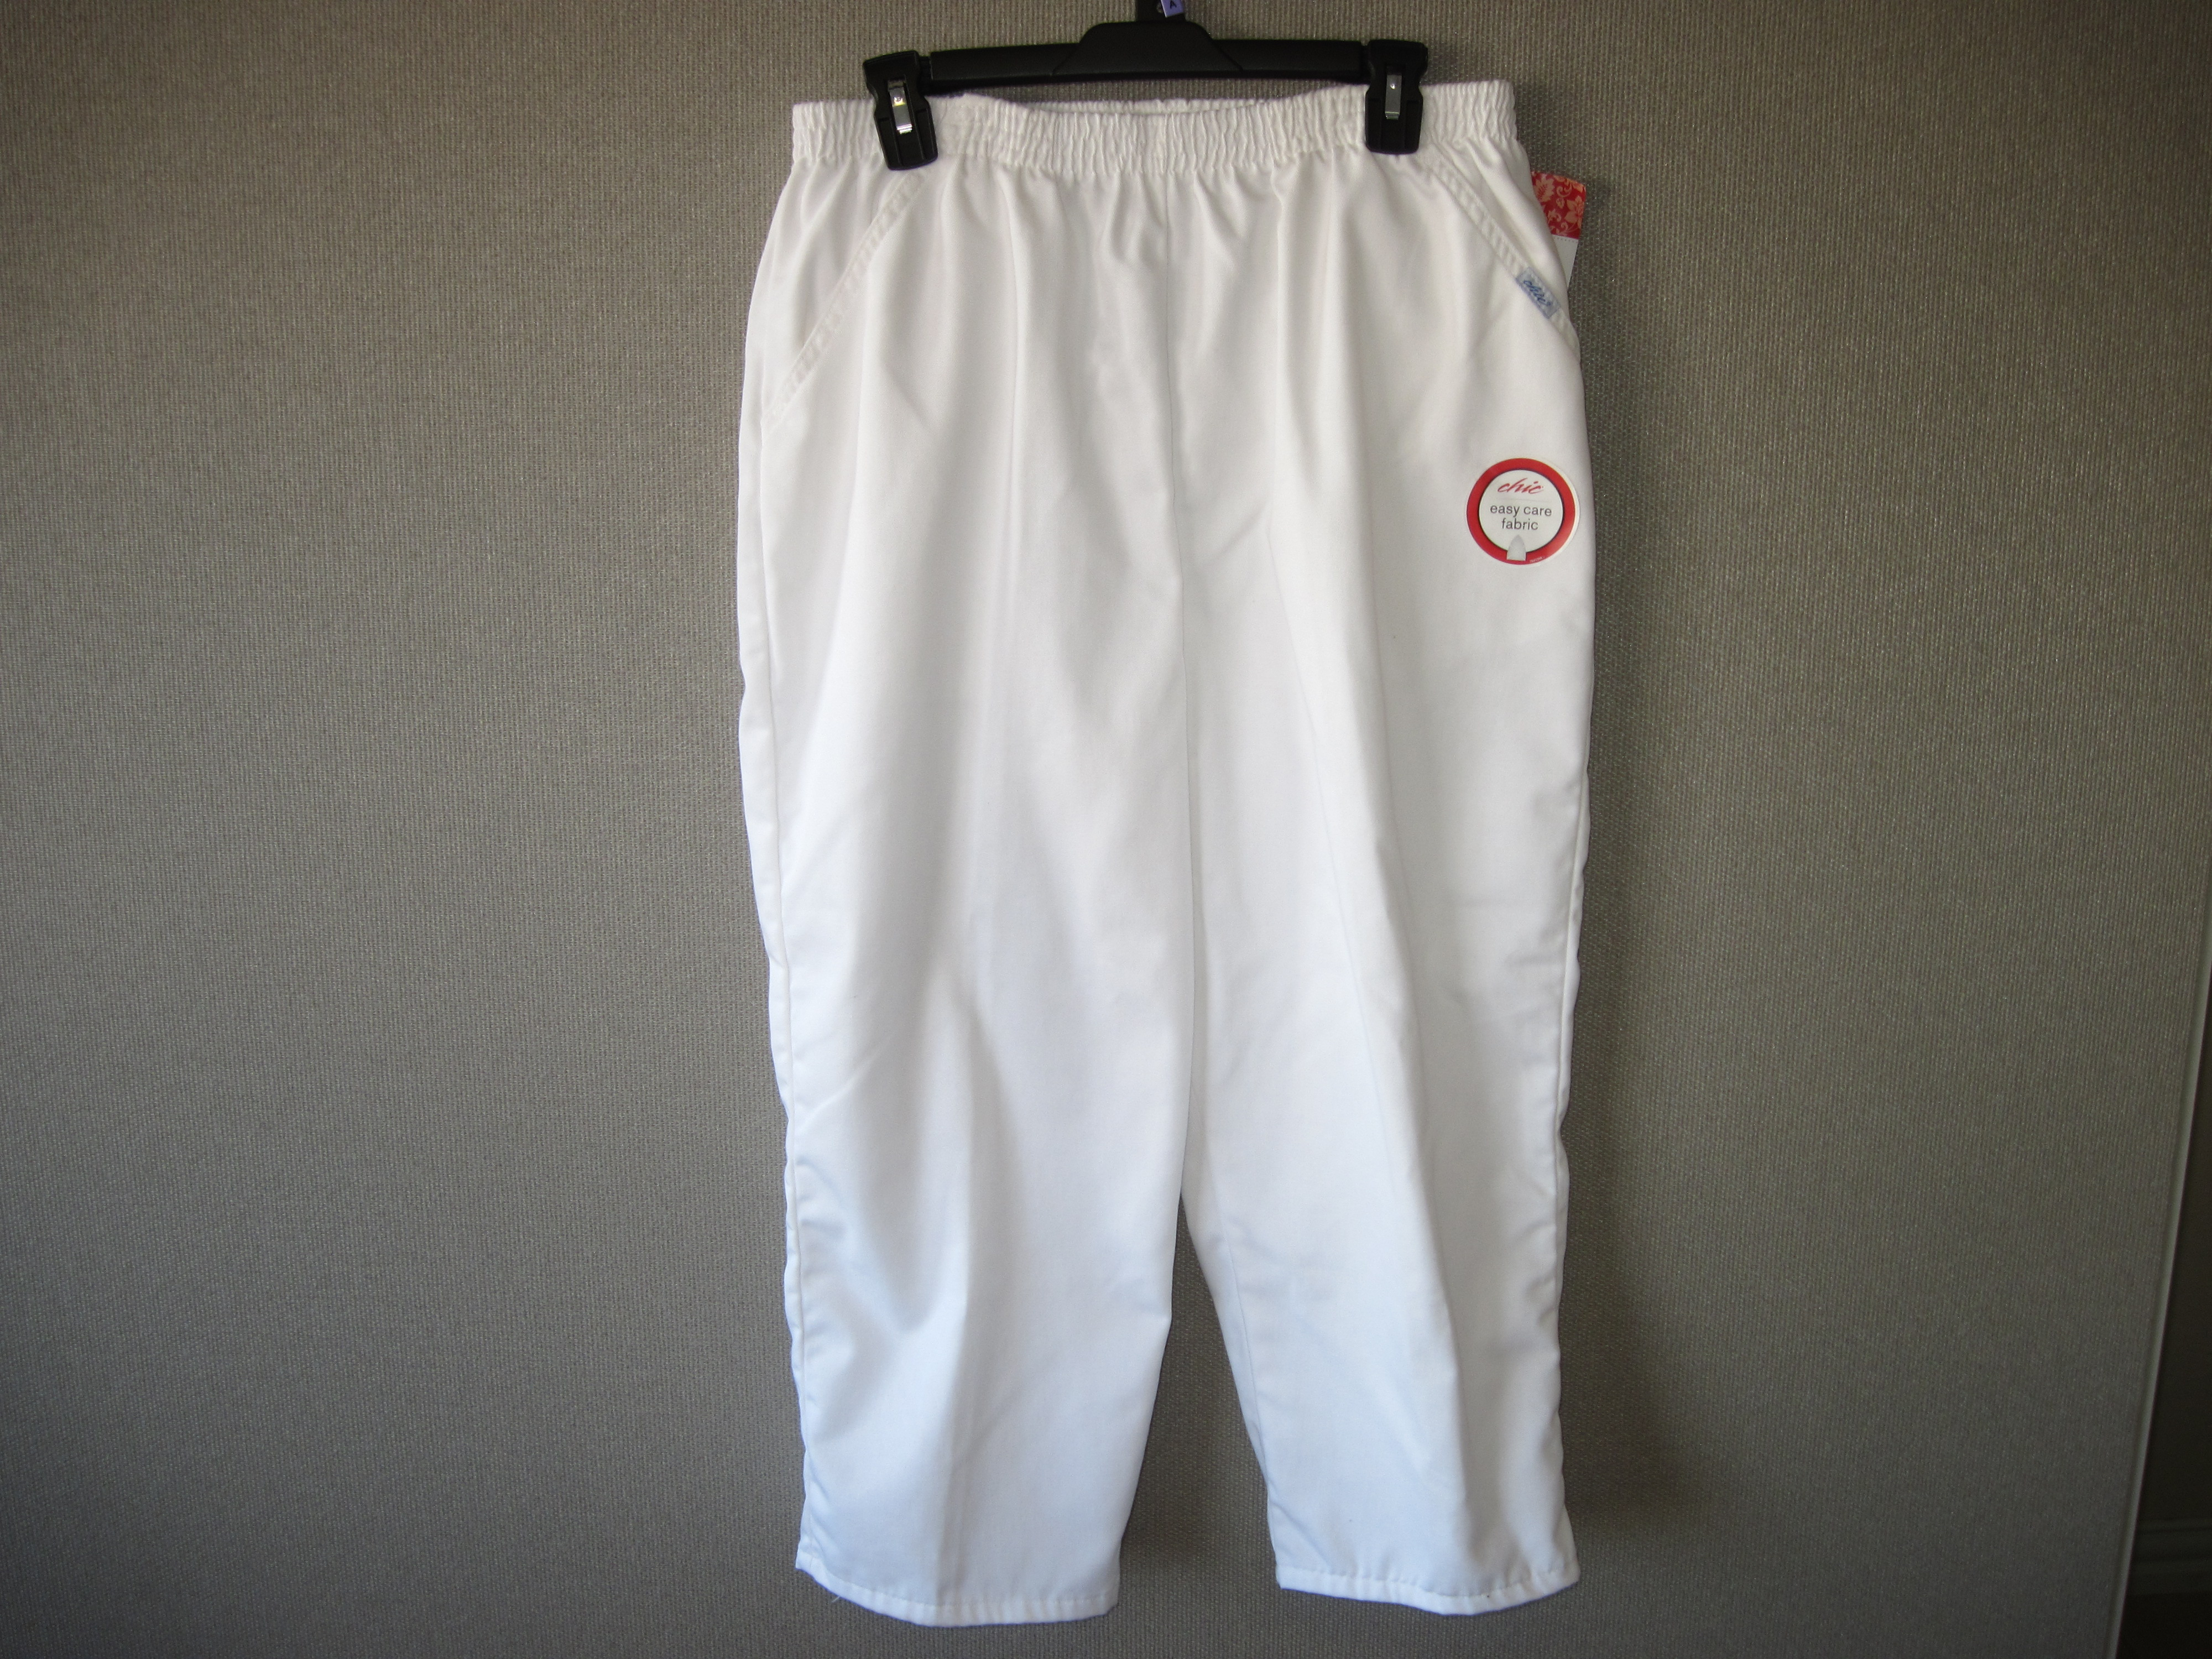 Chic Sz 14 AVG Misses Pants (White)